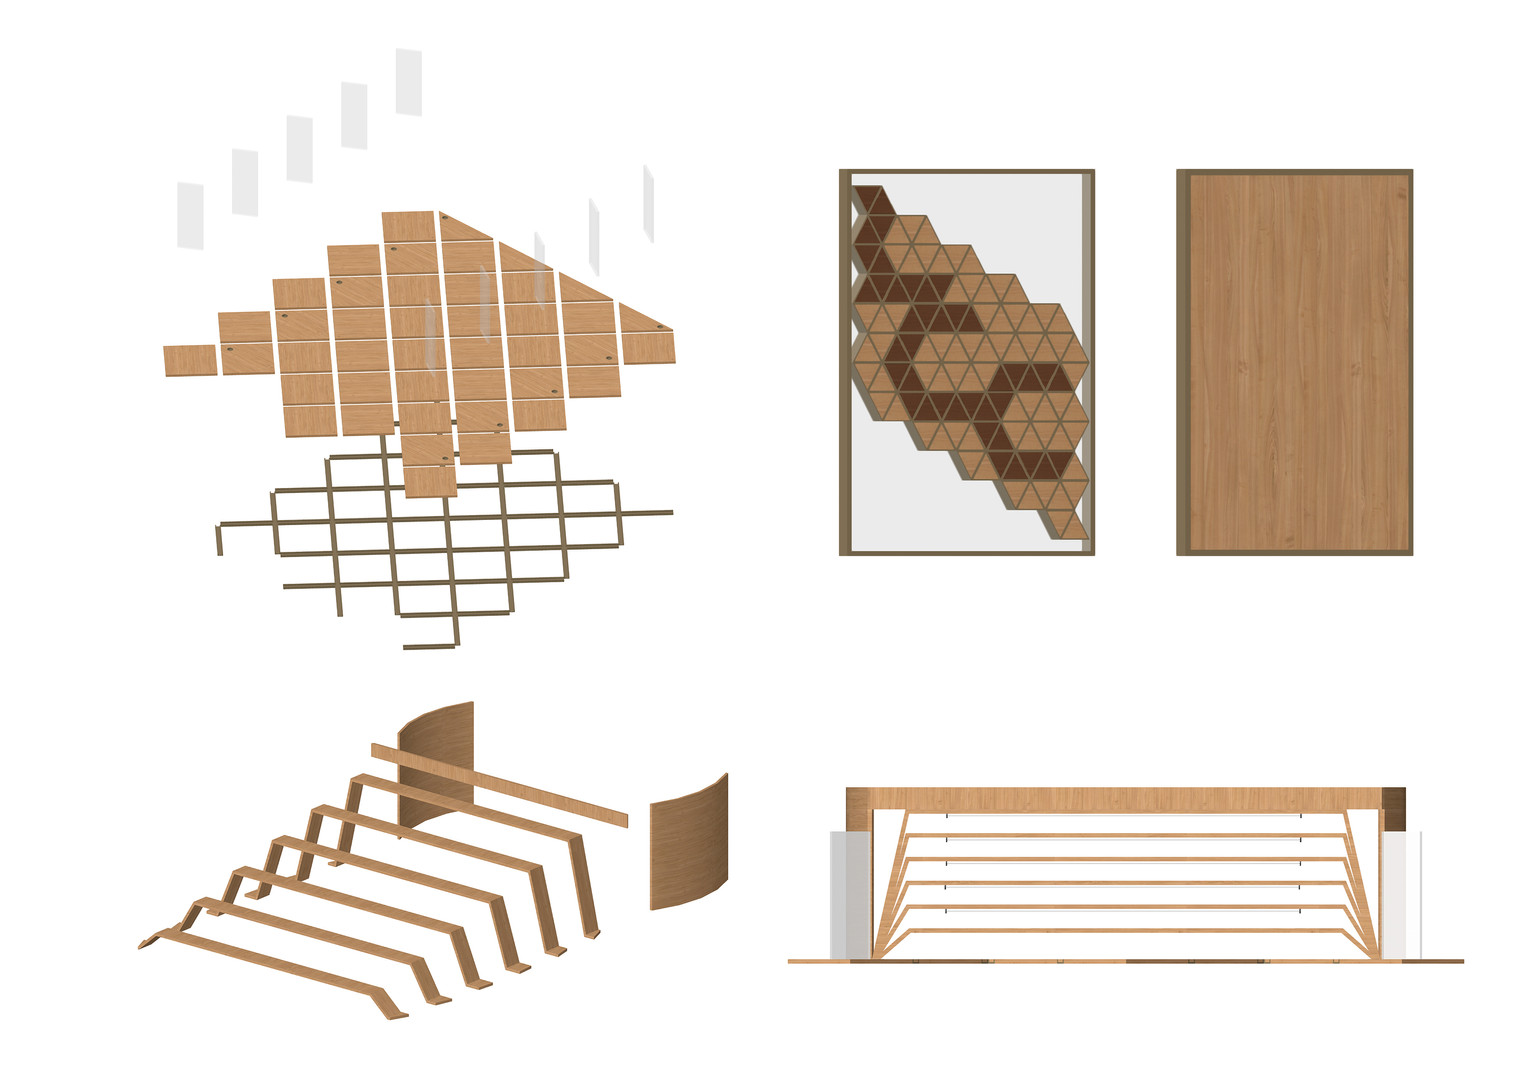 Elements of the Design